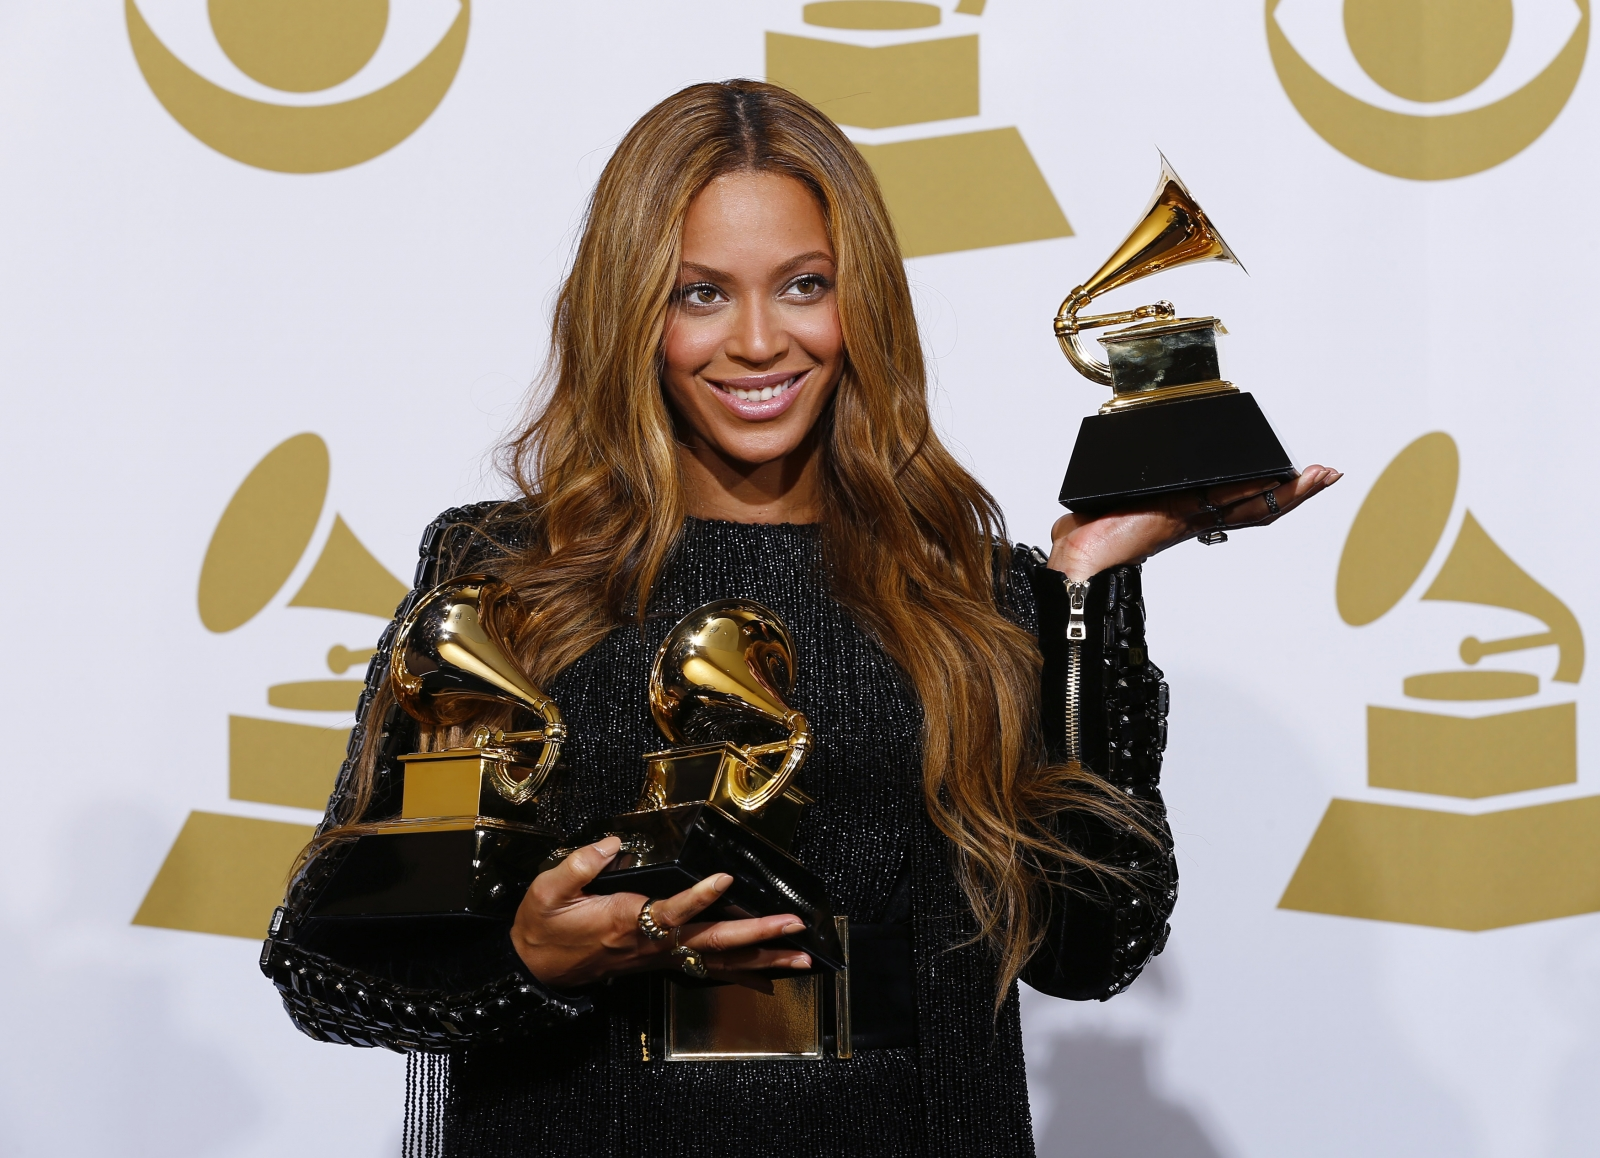 Grammys history and winners through the years -